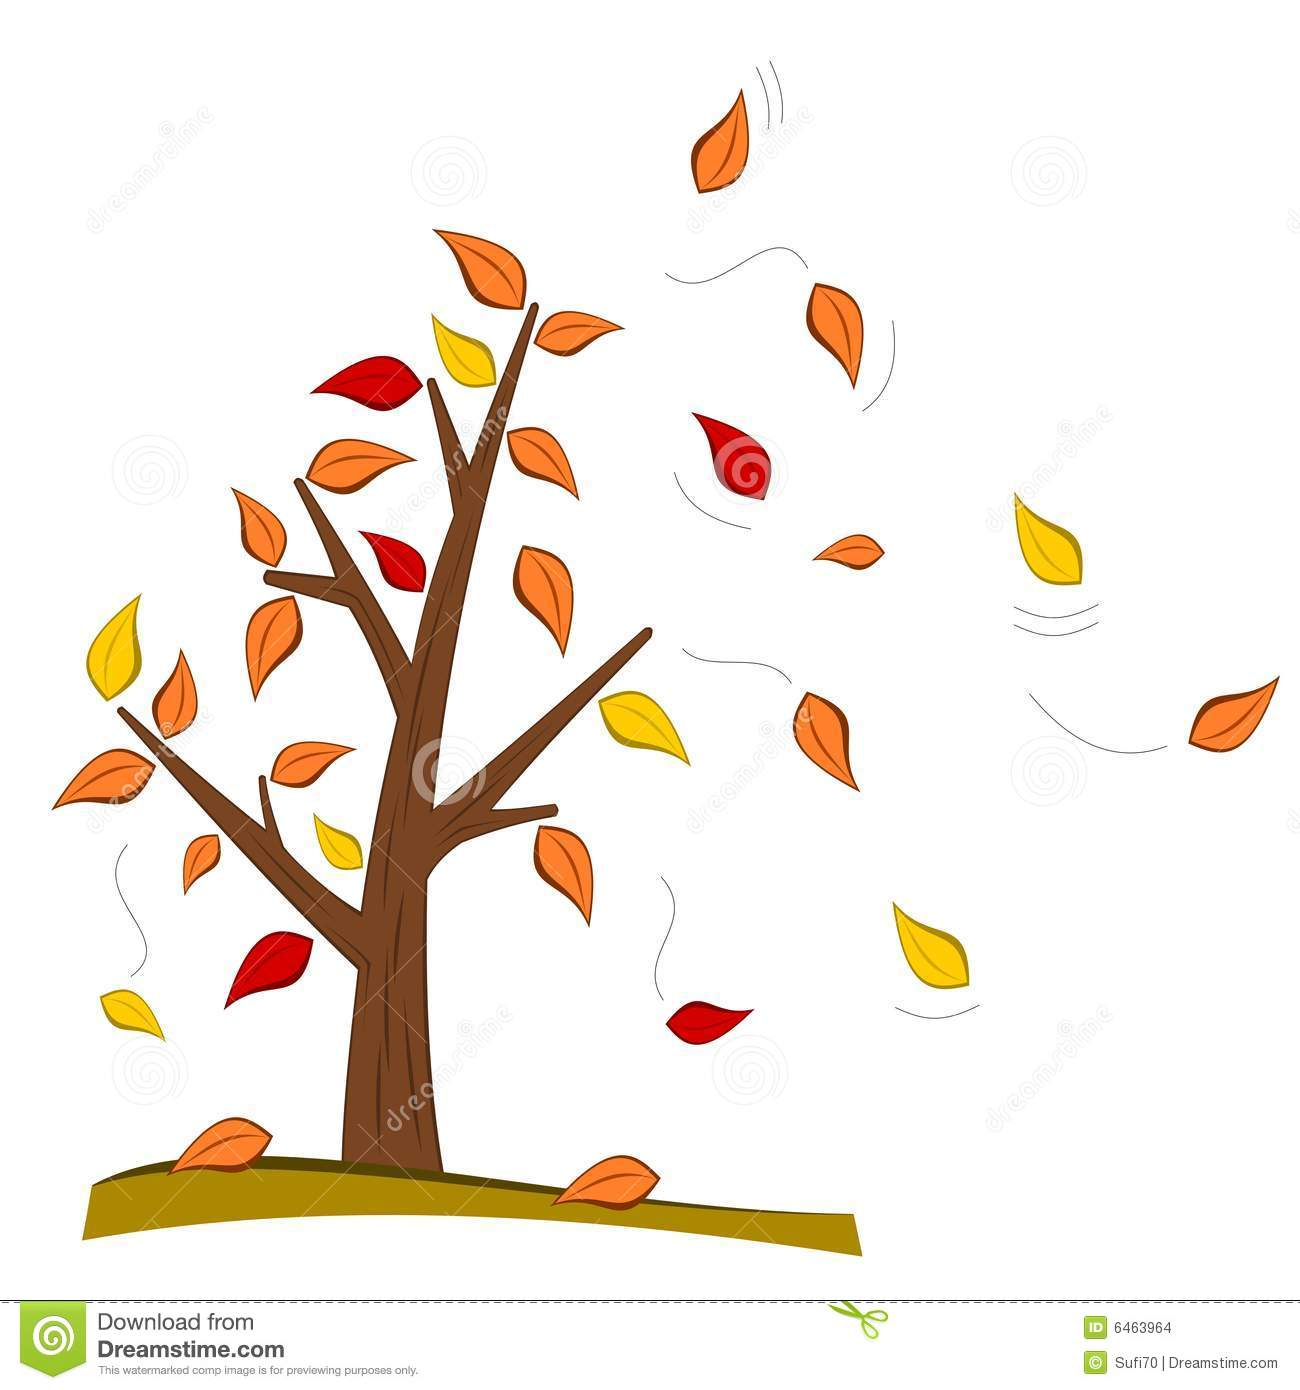 Animated Fall Tree Clip Art Images Tree In The Wind With Falling